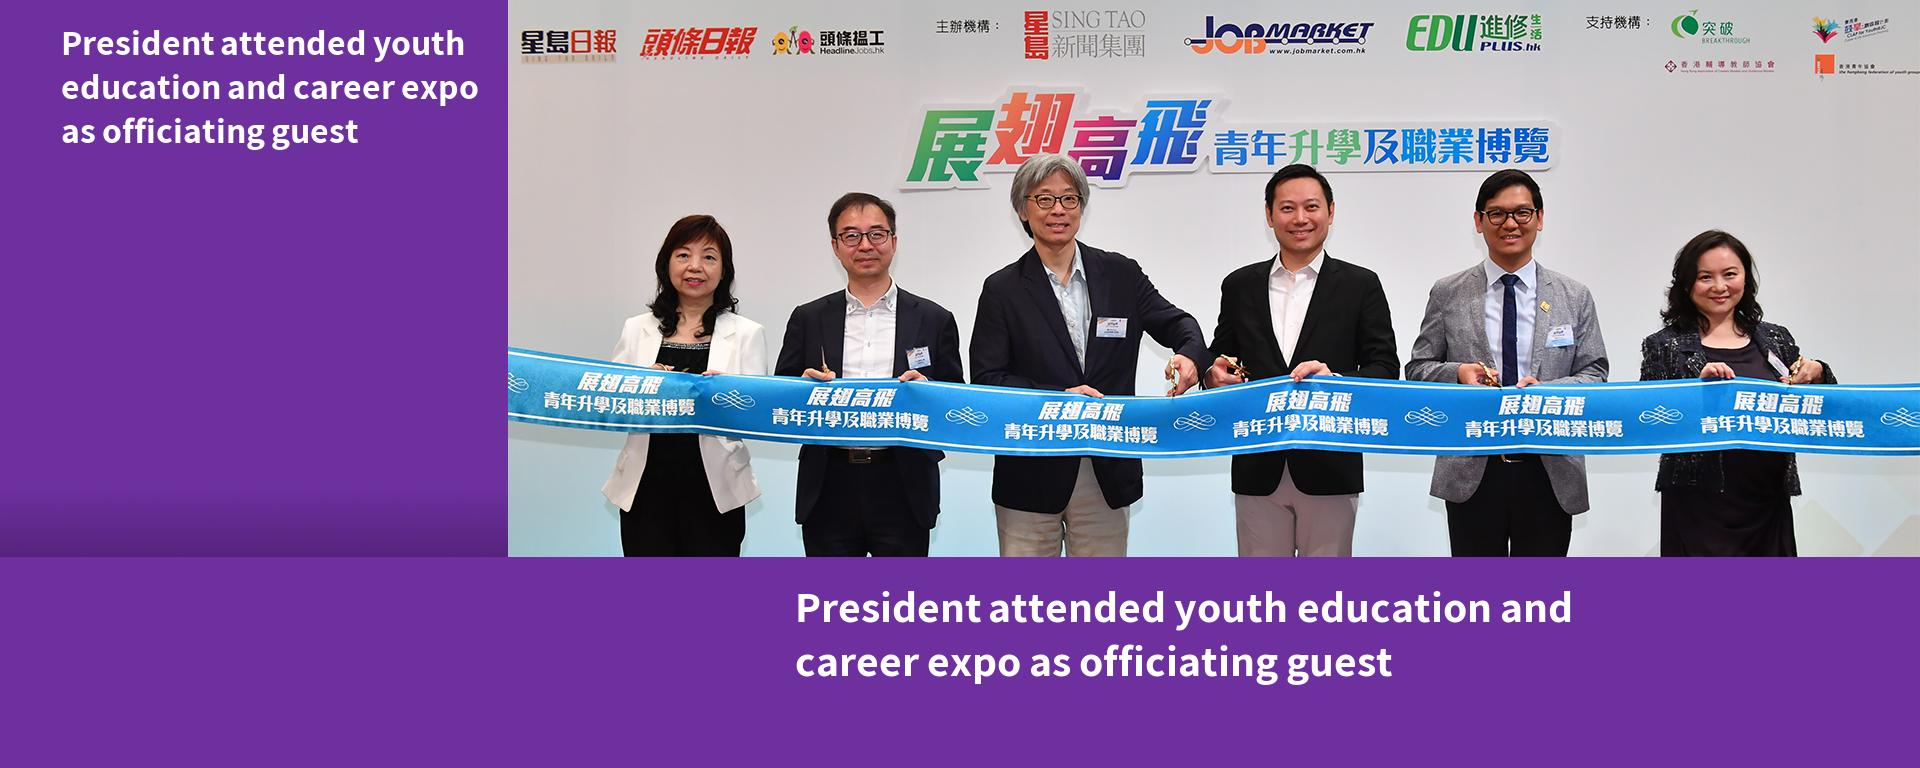 President attended youth education and career expo as officiating guest